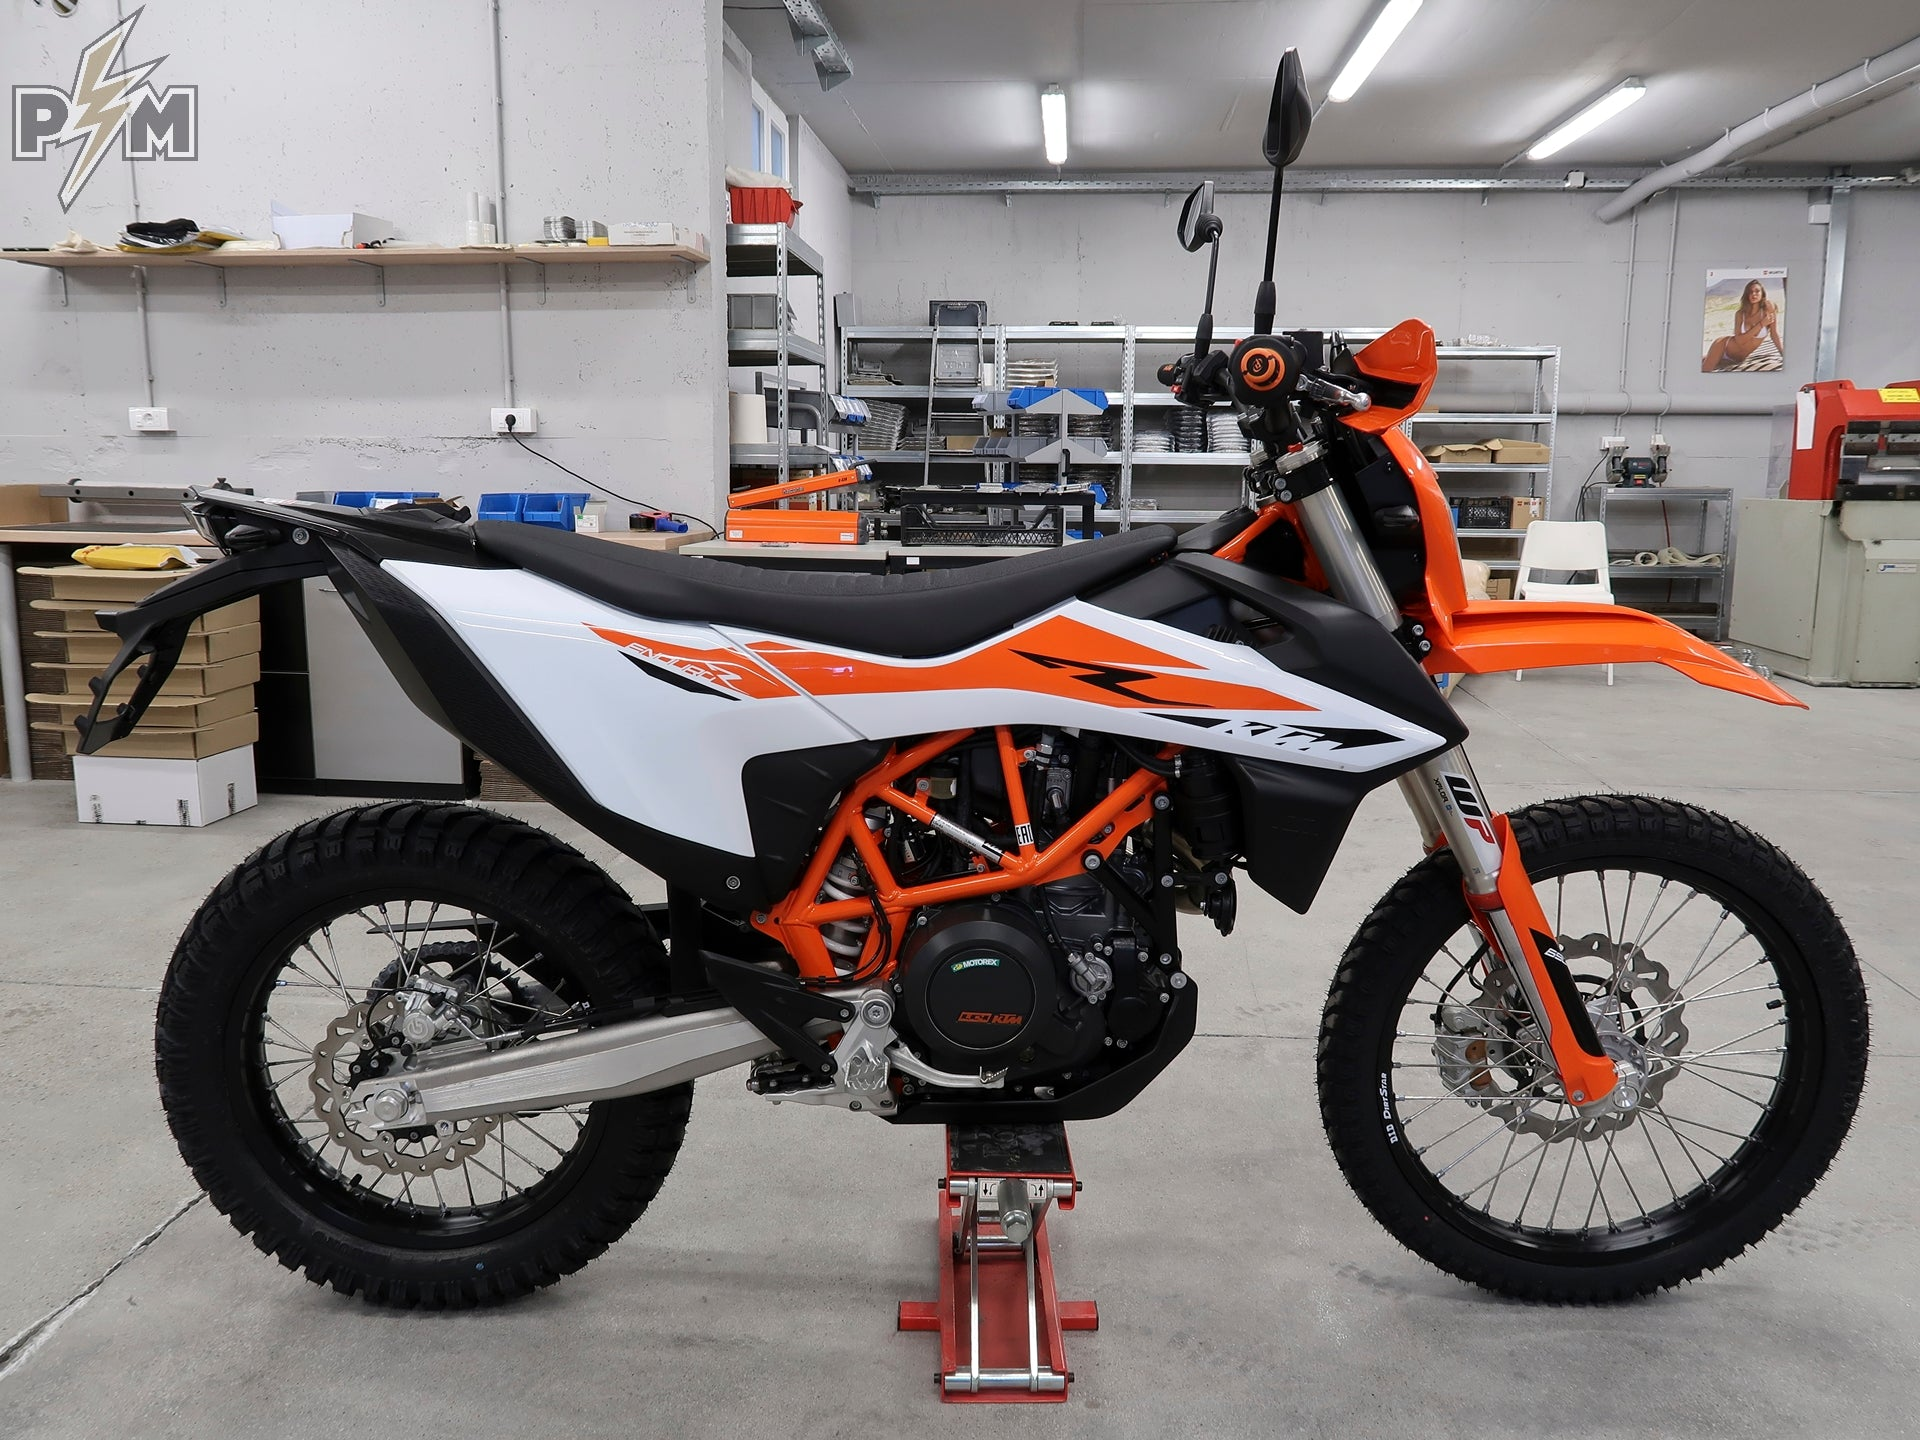 2019 KTM 690 Enduro R - first impressions